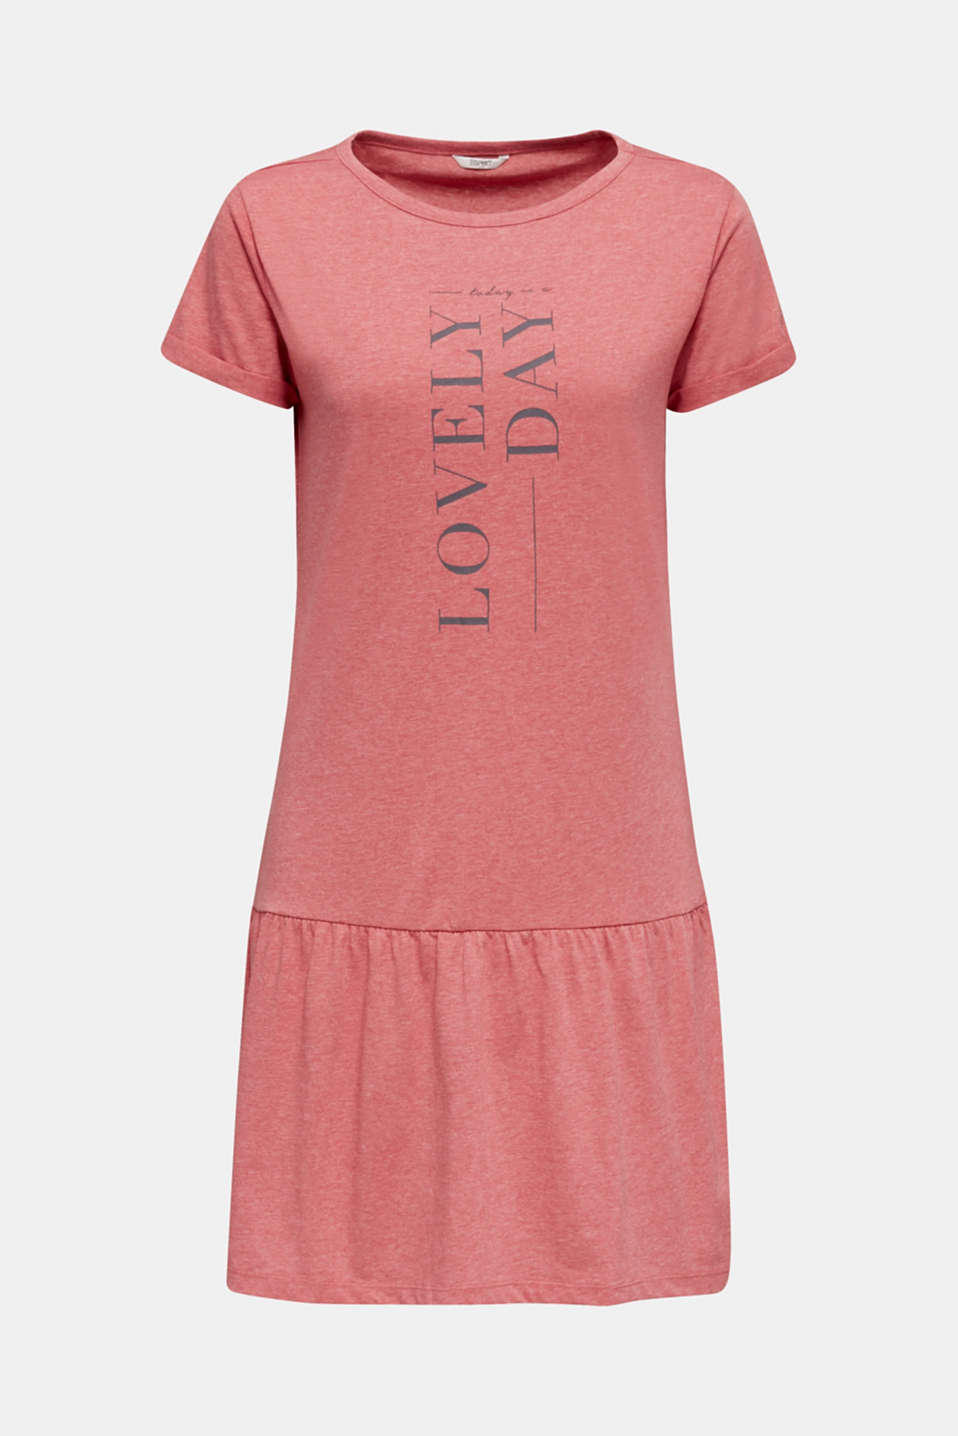 Jersey nightshirt with a flared skirt, CORAL RED, detail image number 4